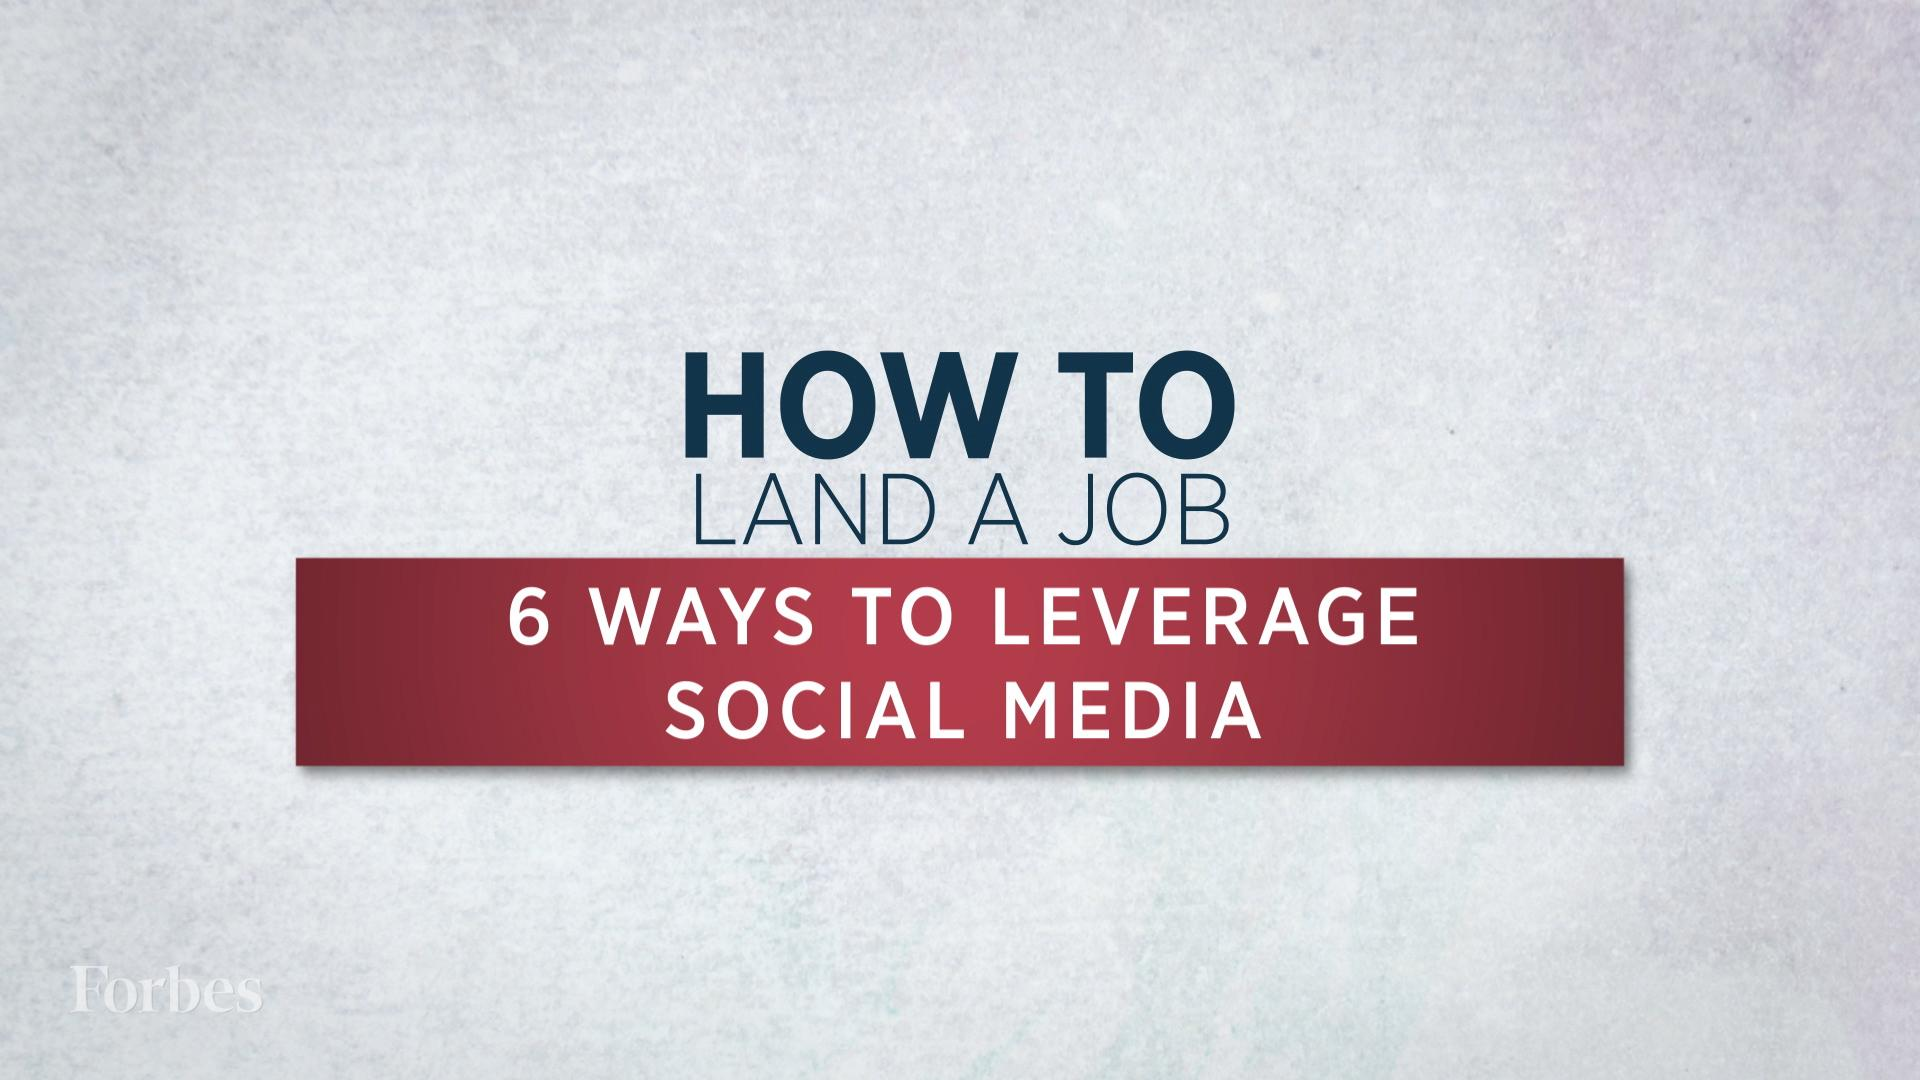 How To Land A Job Using Social Media